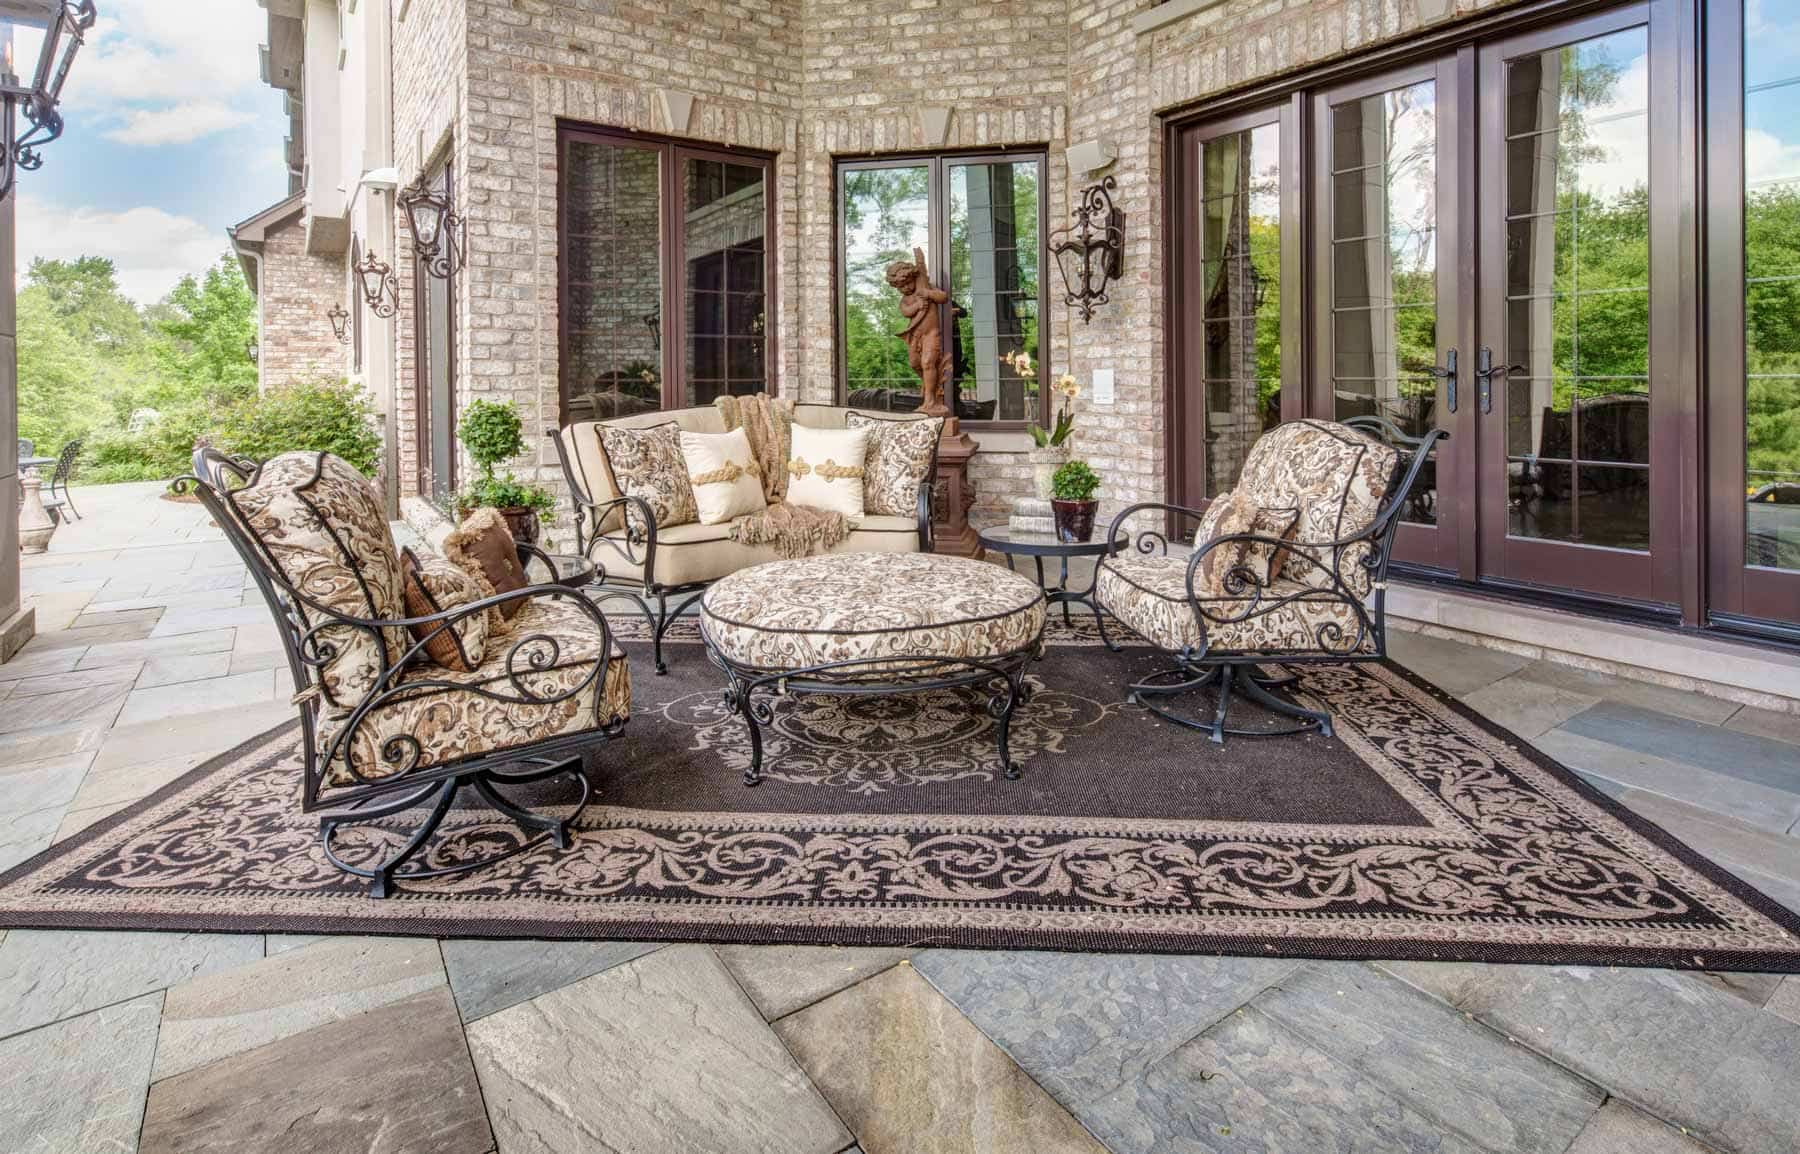 Luxury Outdoor Patio Furniture And Rug